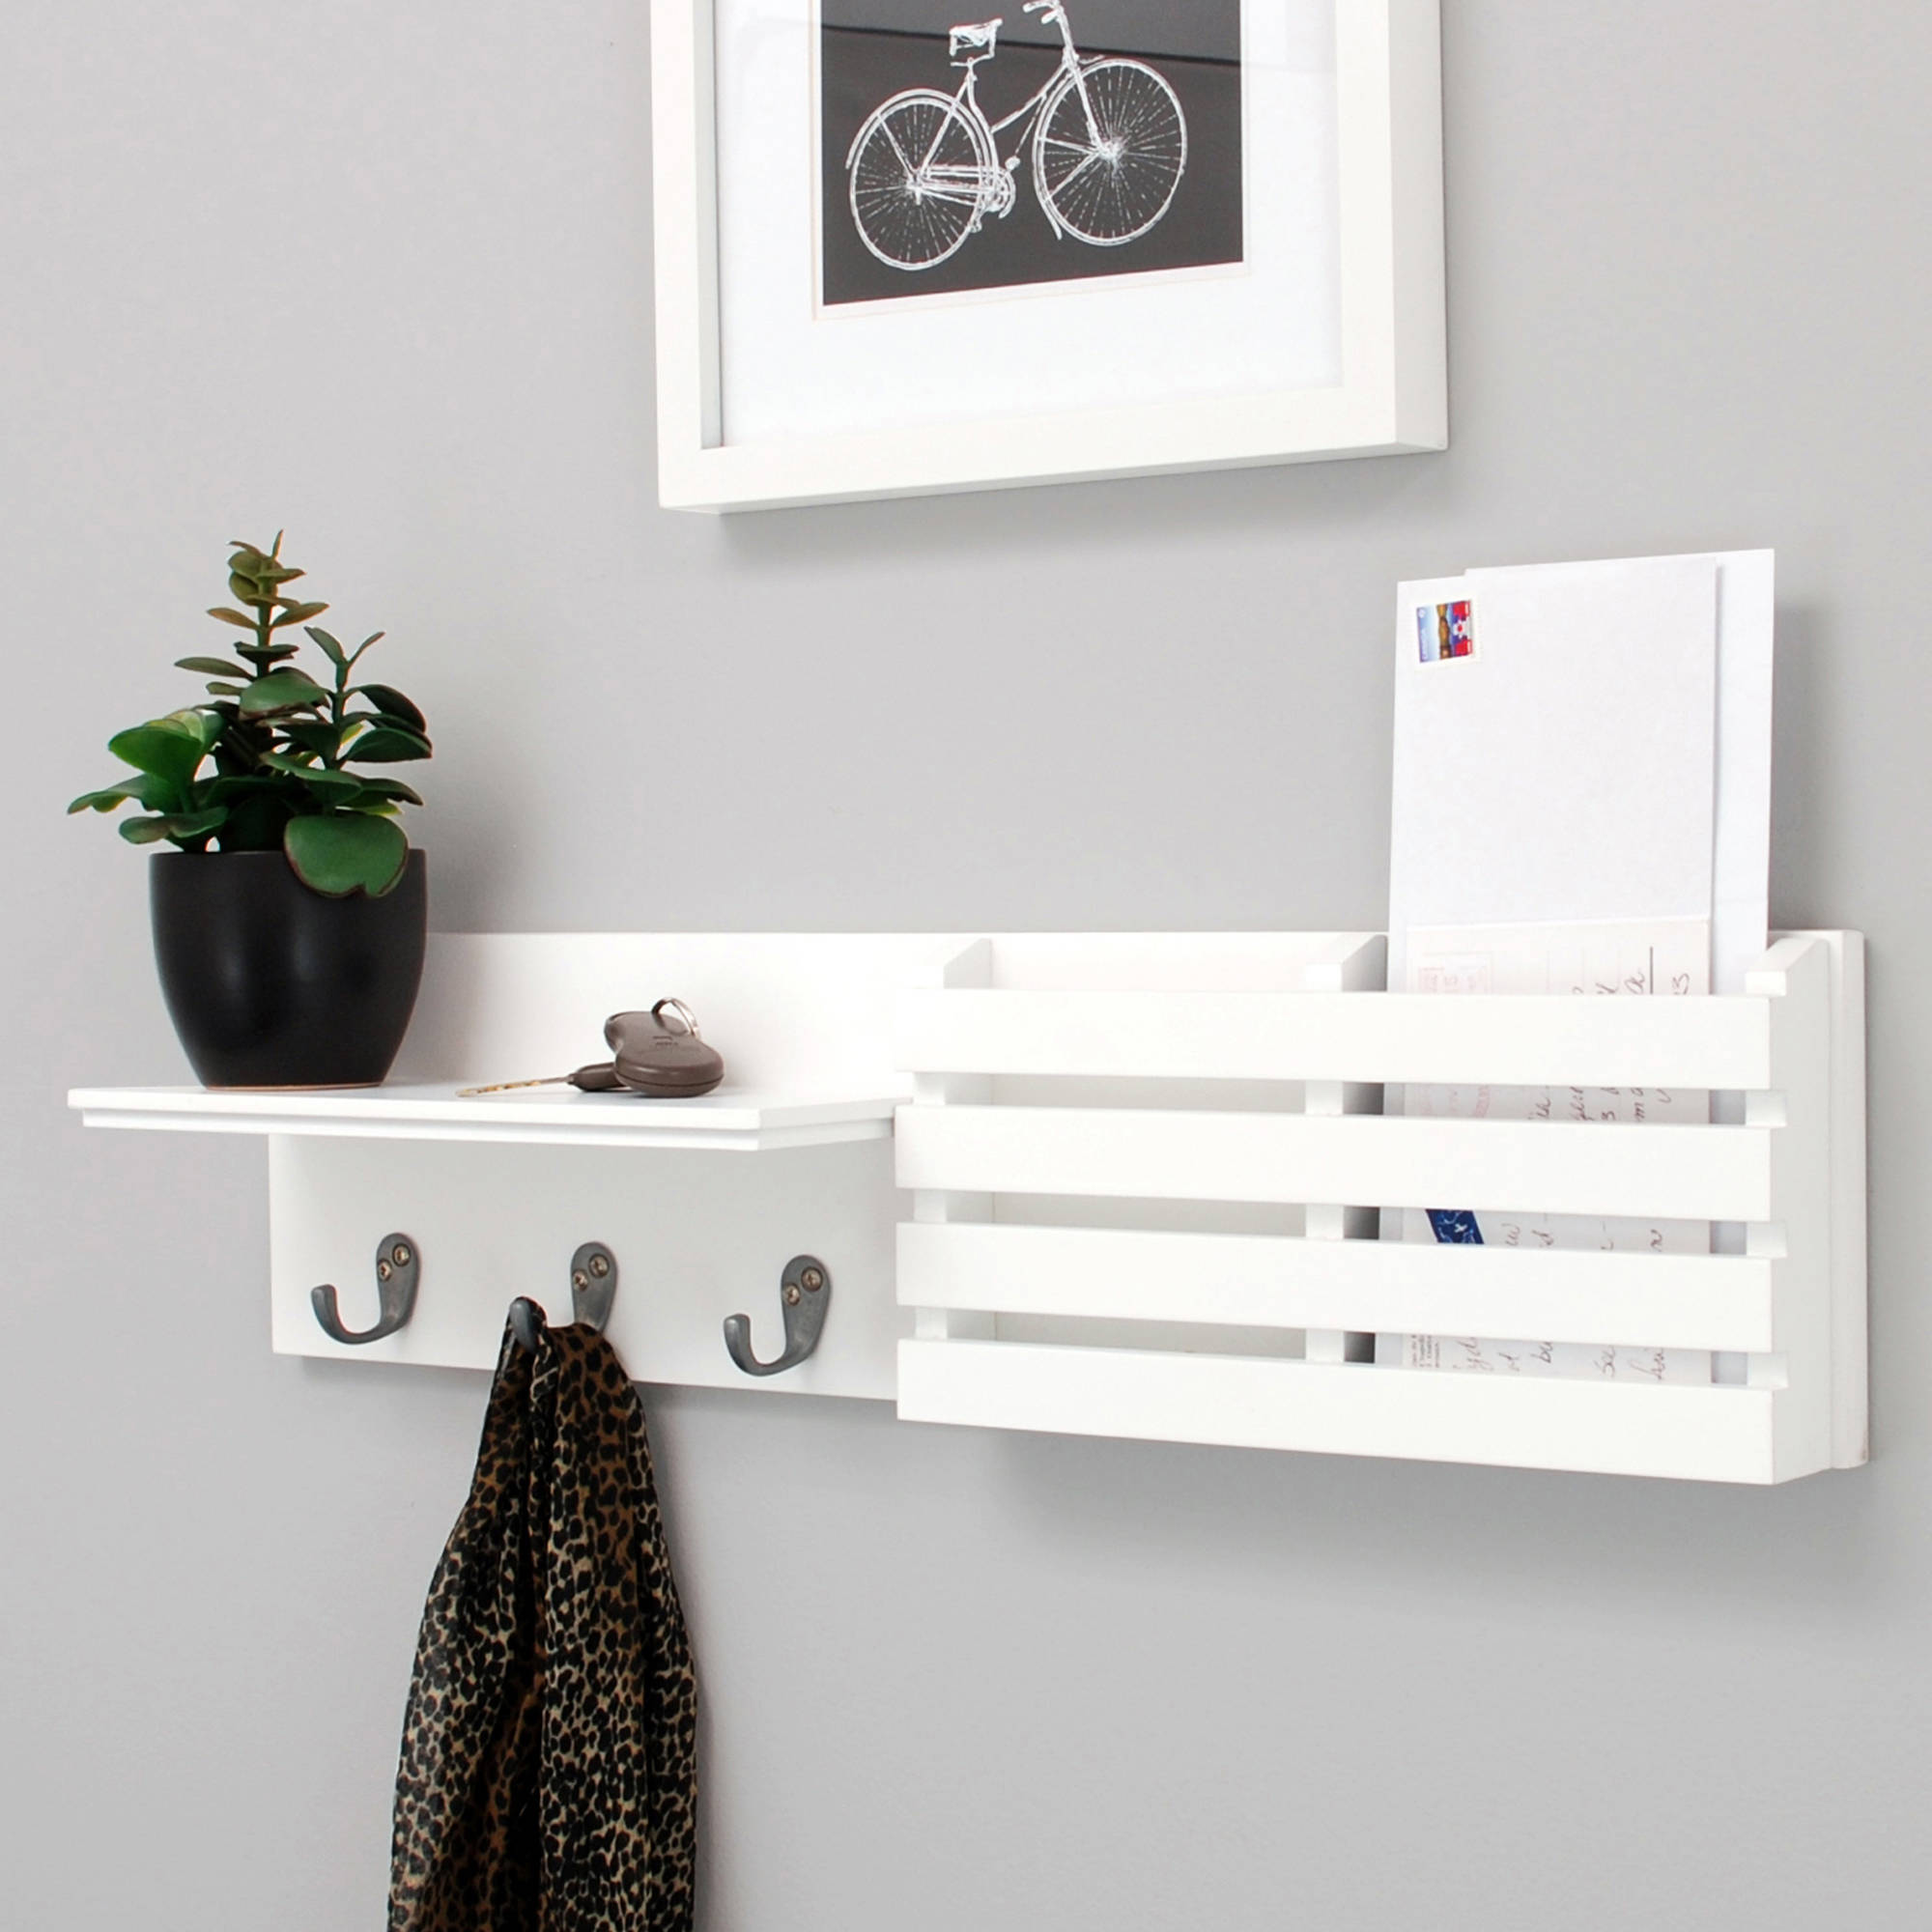 wooden coat hook hooks cdbossington wall charming rustic image storage shelf of entryway design interior wood rack